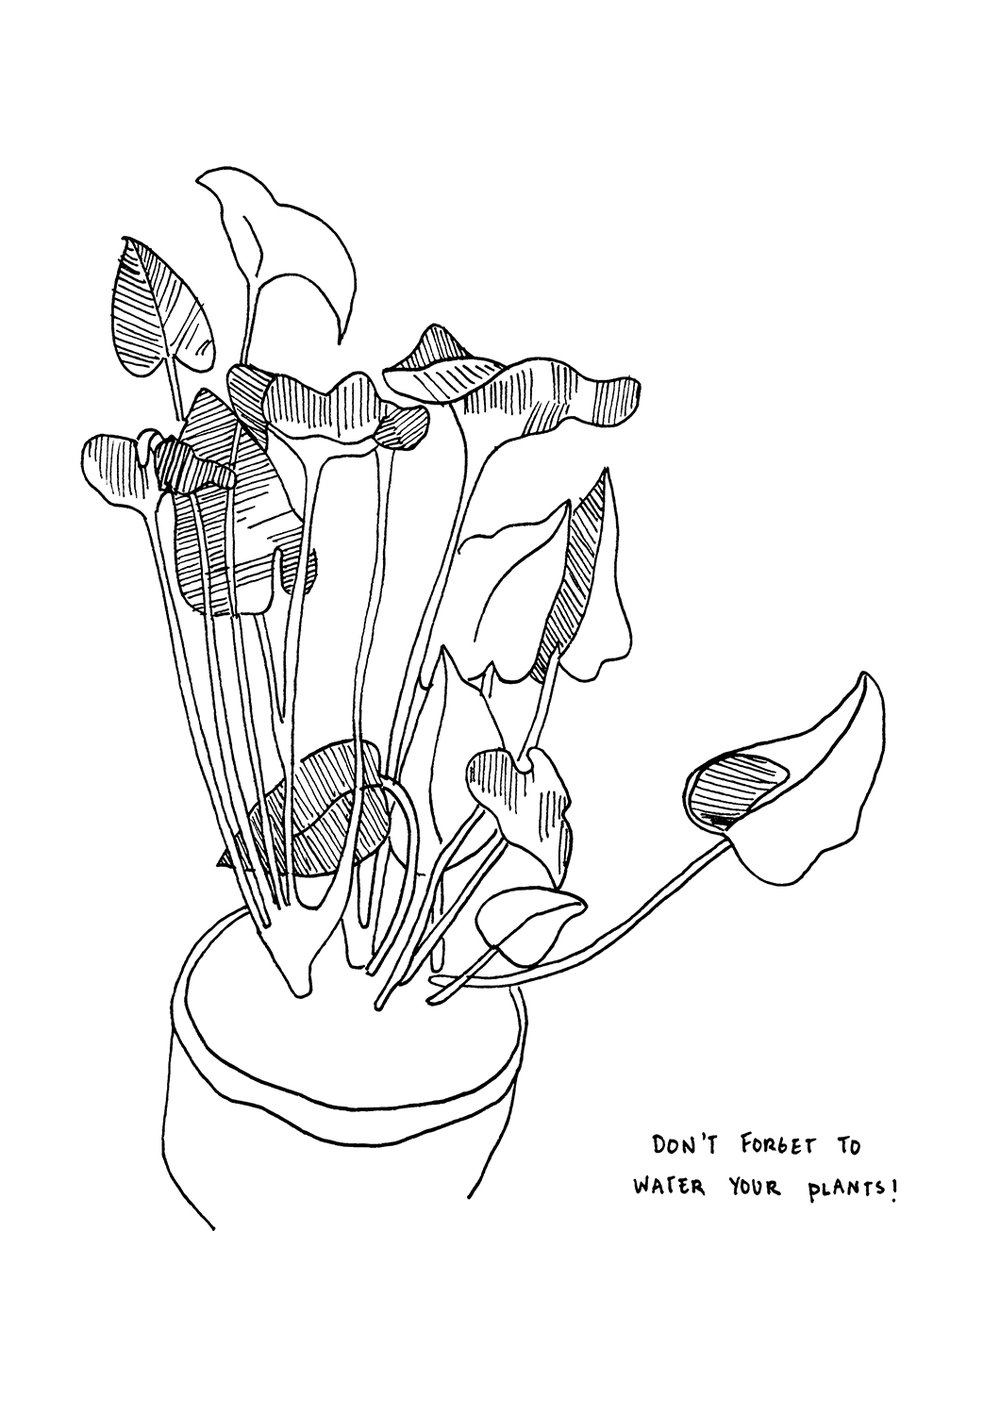 Harriet_Water your plants_A4_V1 copy.jpg